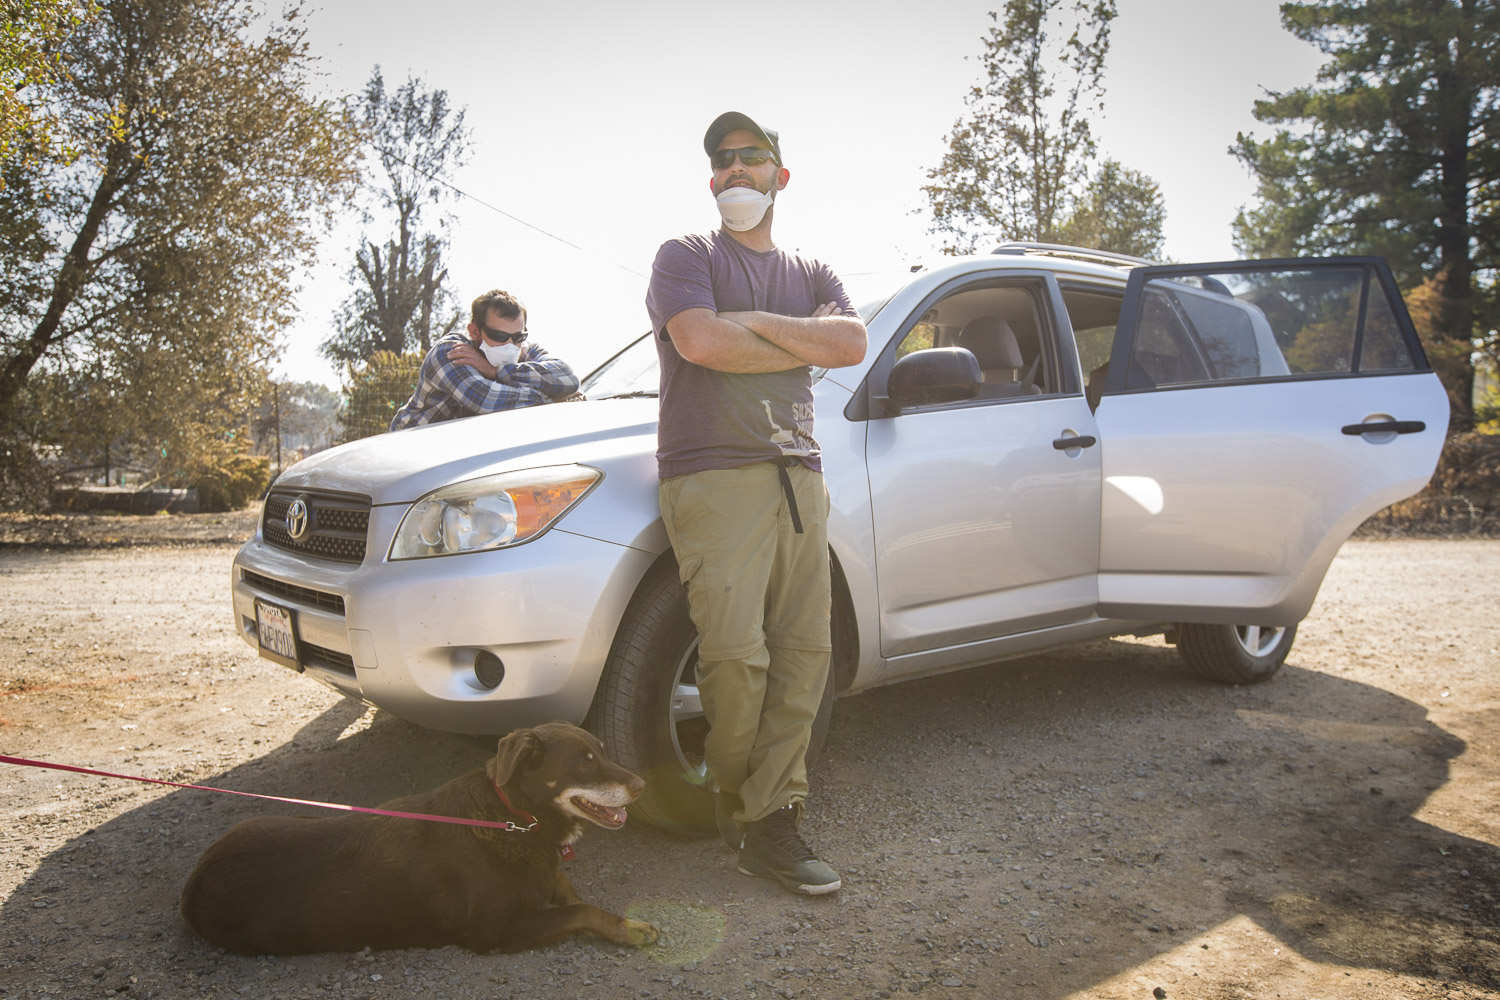 Eli Monroe, center, stands by his car he used to barely escape the Mendocino-area wildfire on his family's property Oct. 15, 2017 in Redwood Valley, CA.